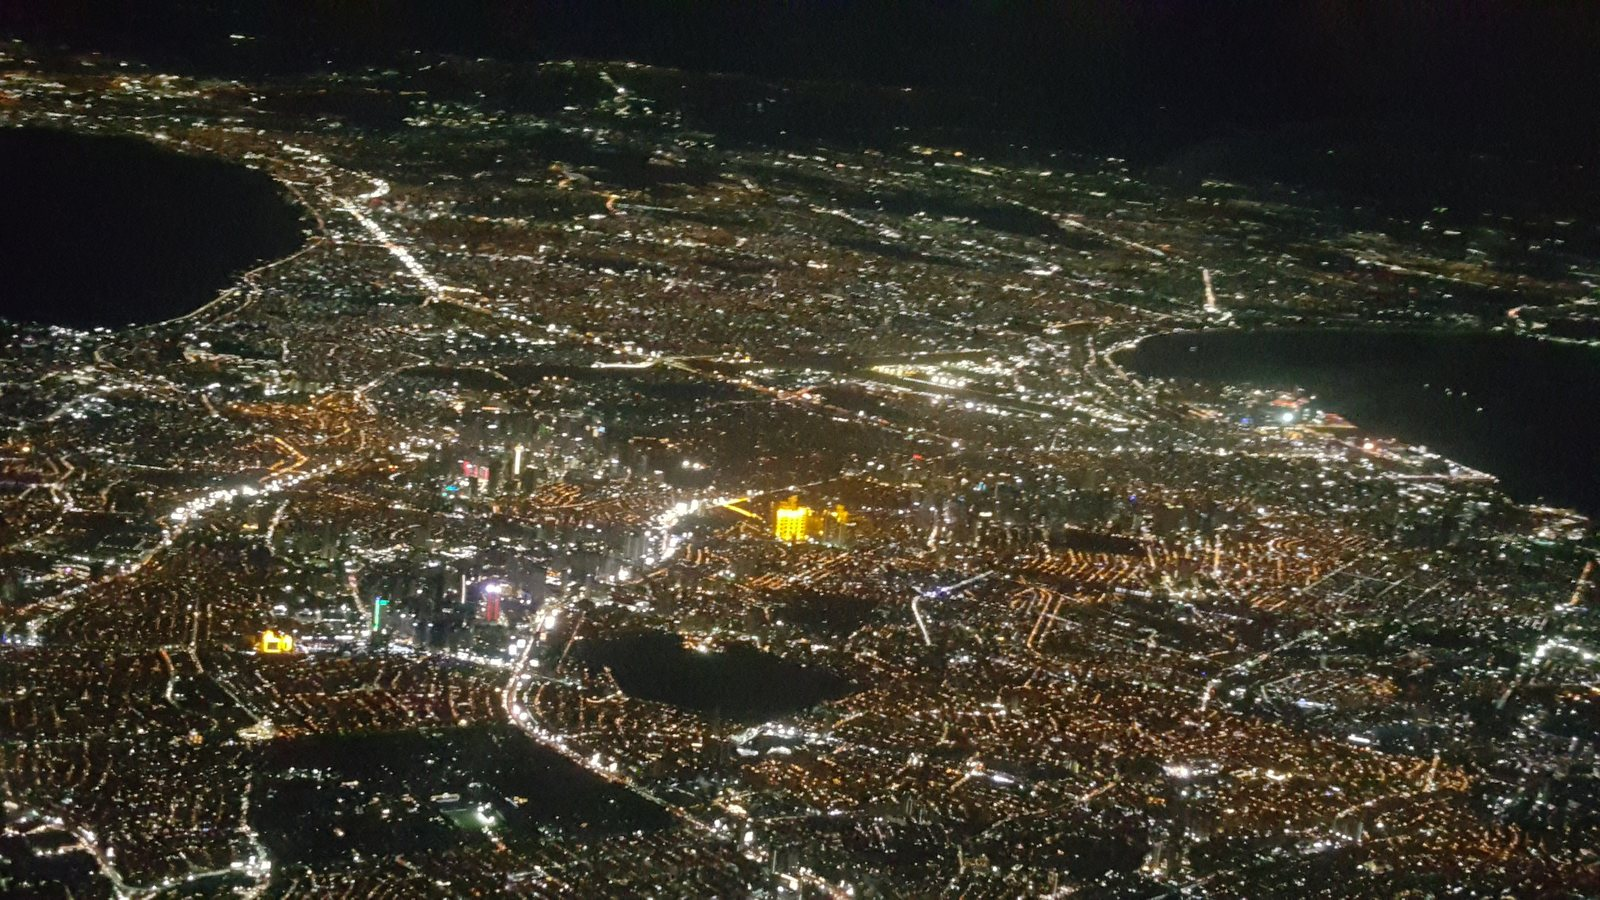 Night view of Manila from the air